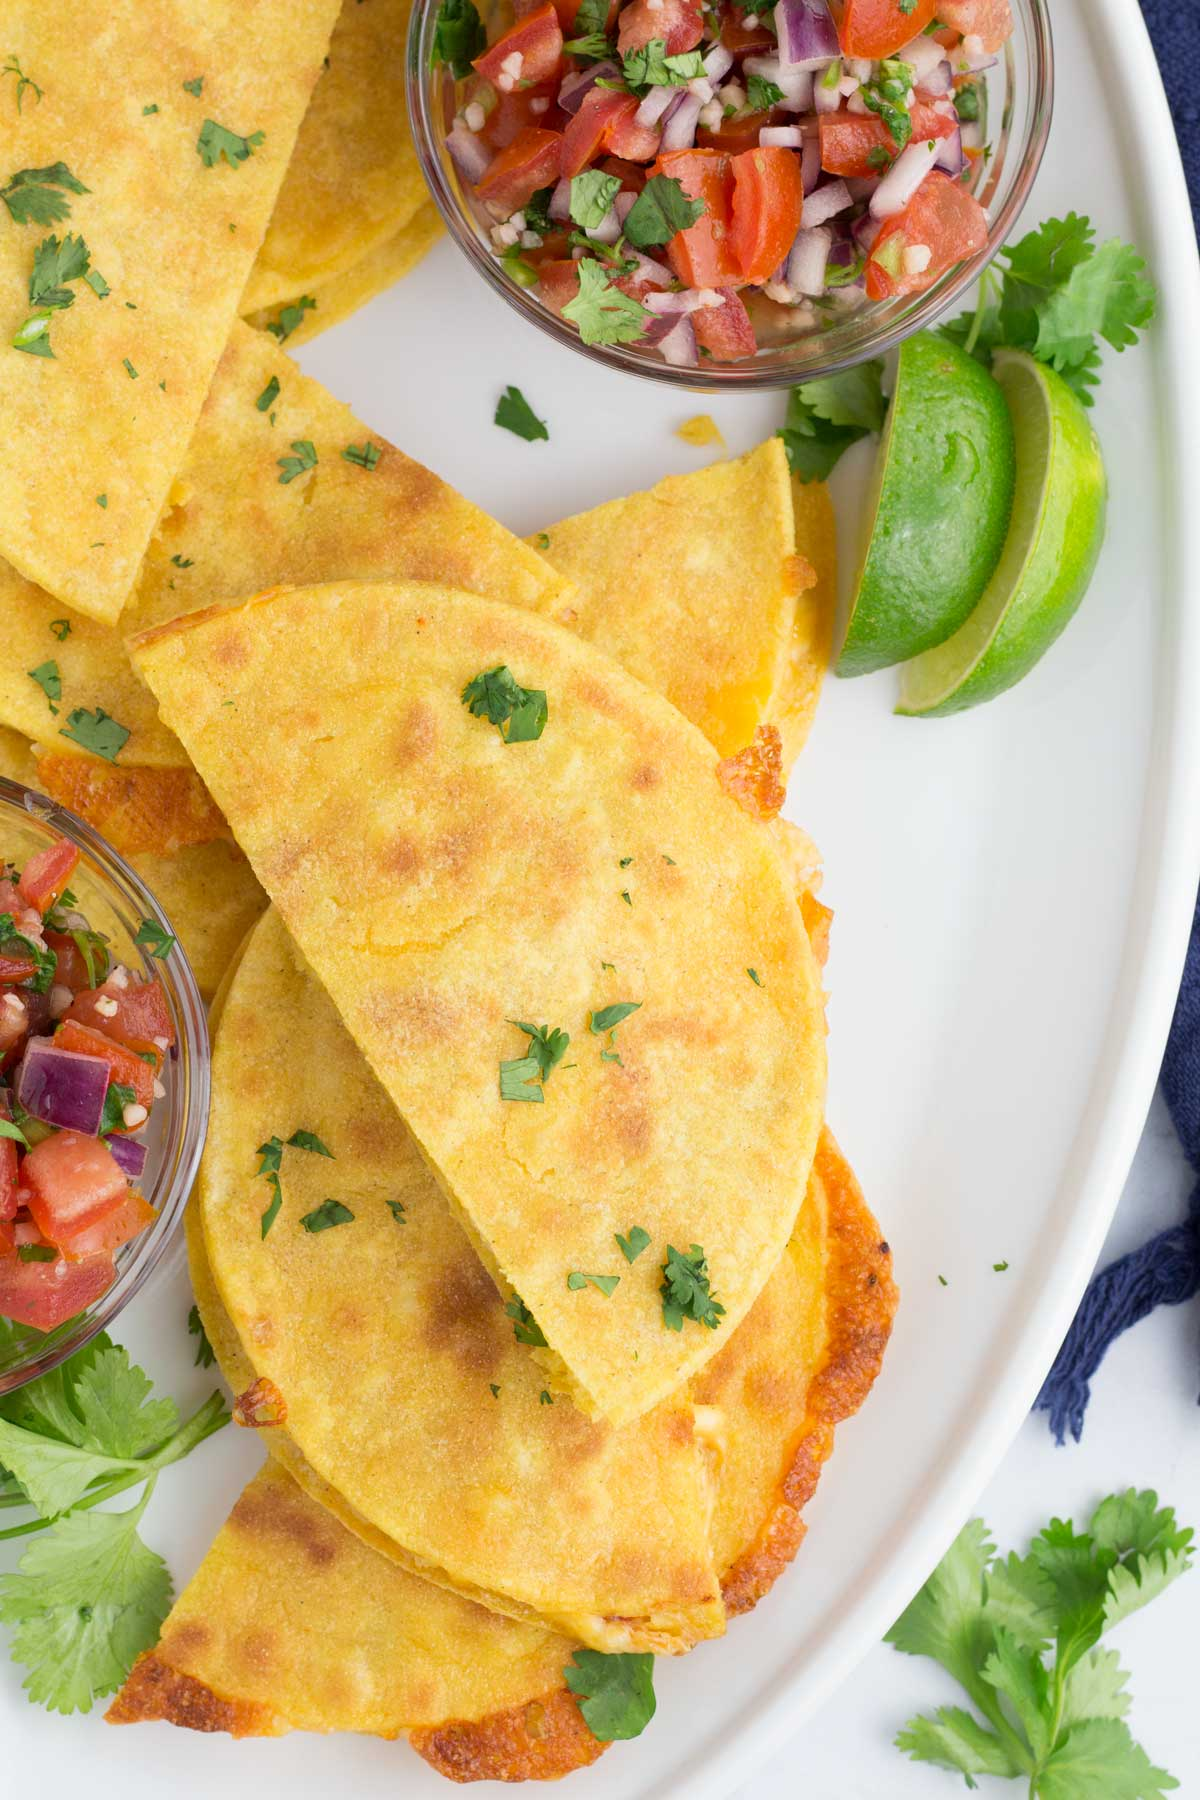 Overhead view of corn tortilla quesadillas on a serving tray.